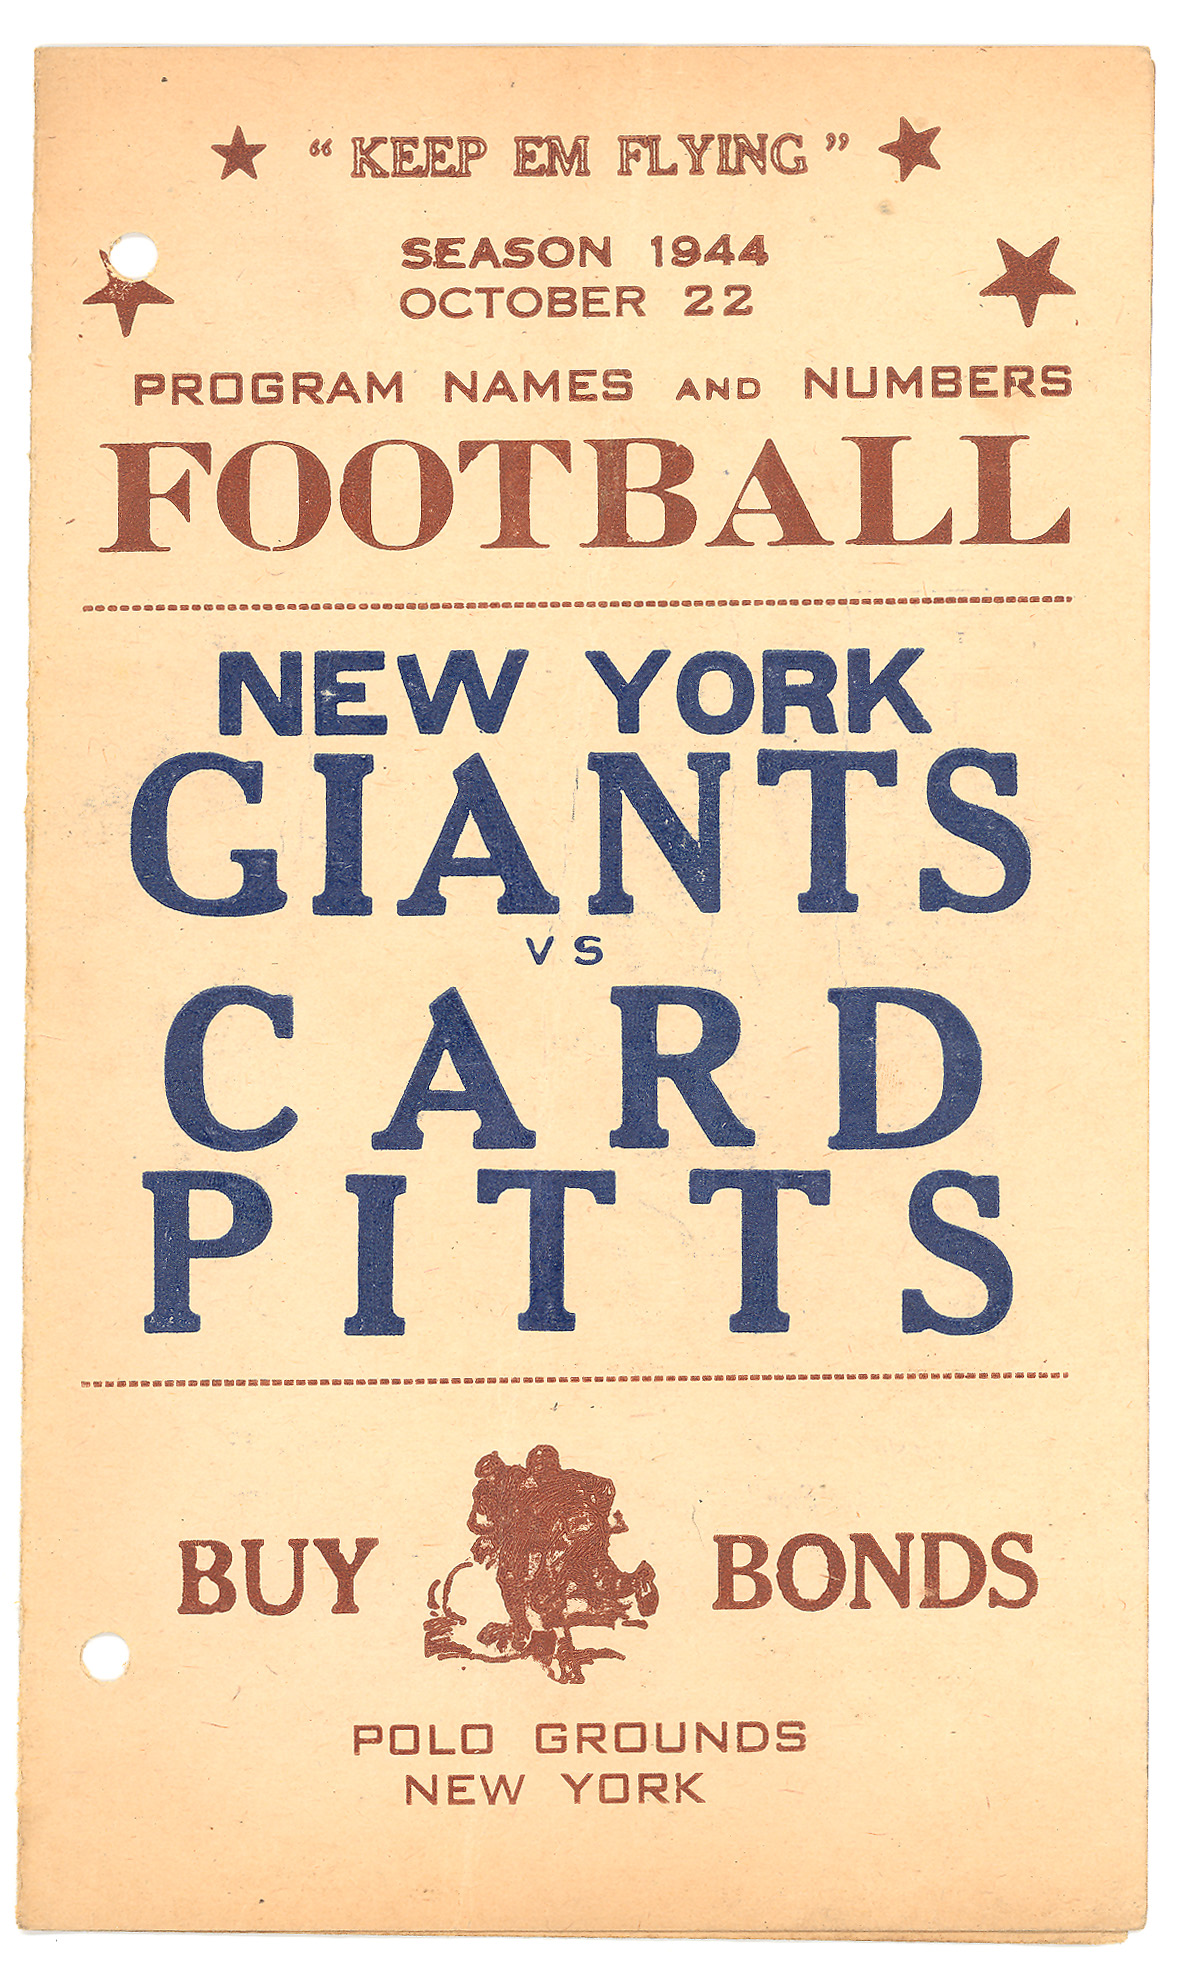 New York Giants vs. Card Pitts (October 22, 1944) - Courtesy of Rev. Mike Moran